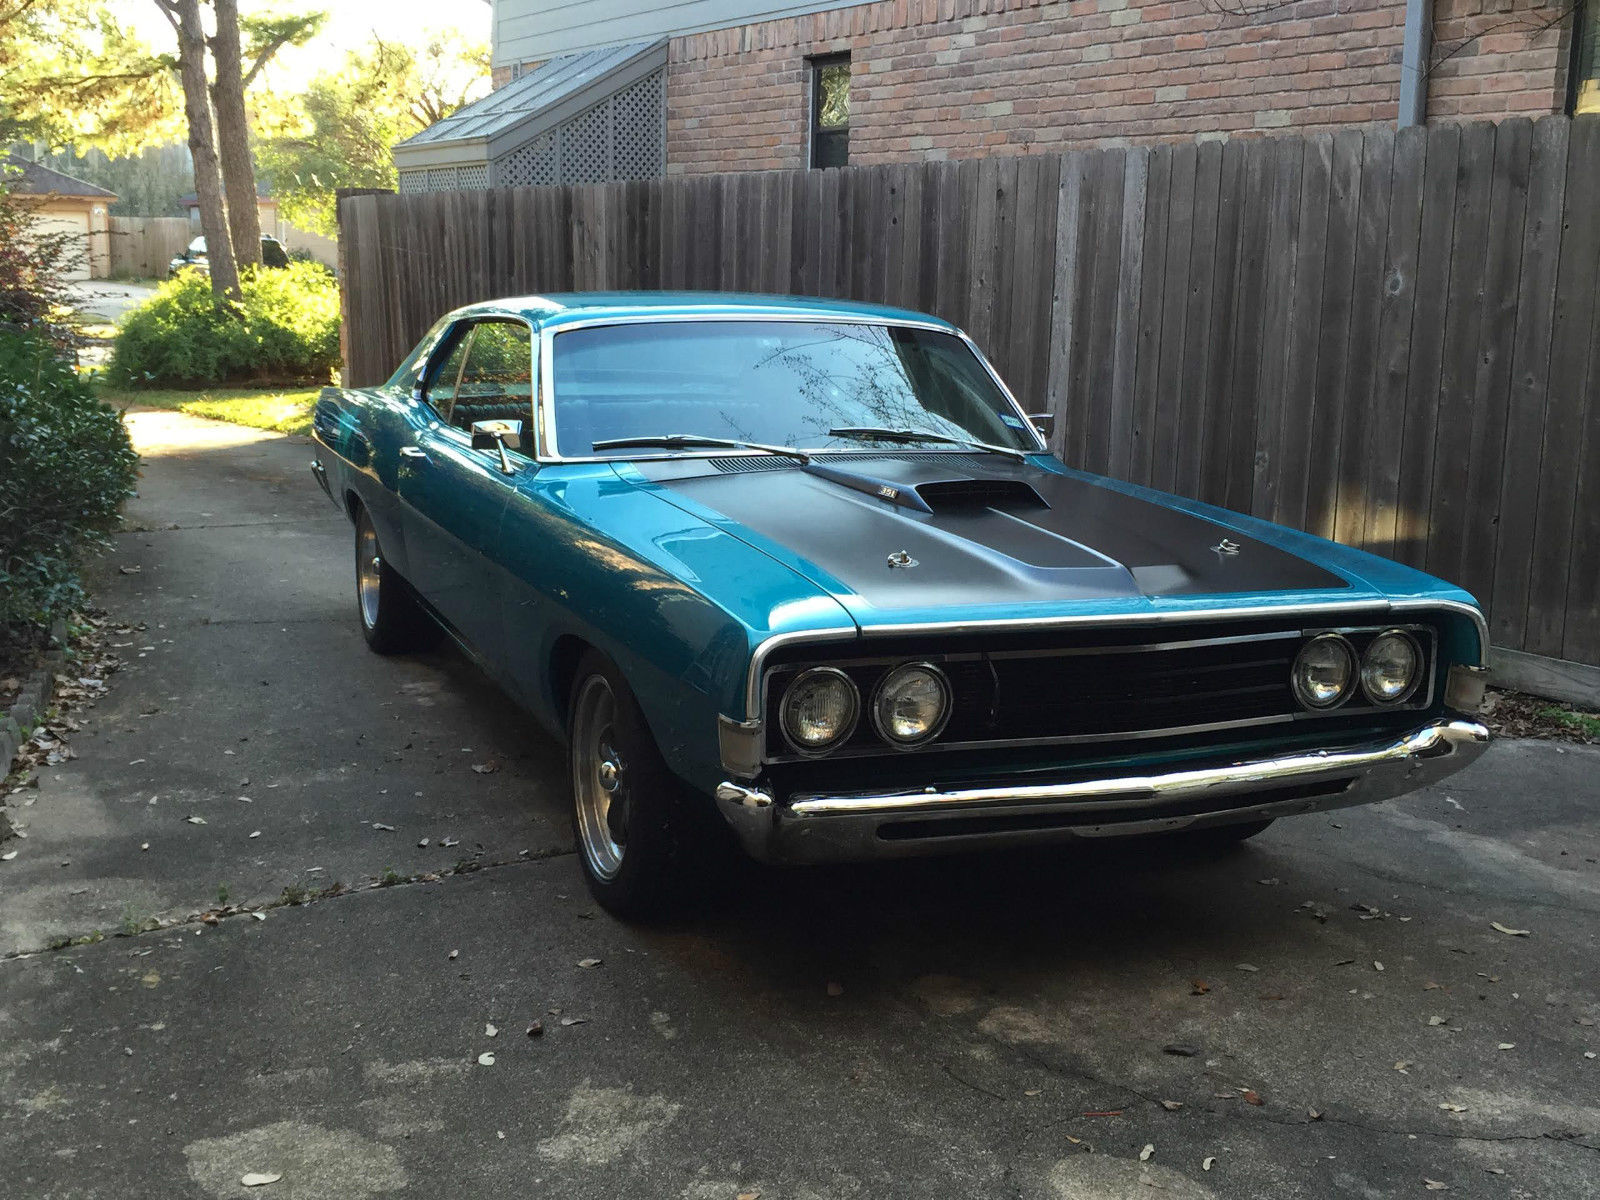 1969 Ford Fairlane 500 With 4697 Miles On Completely Rebuilt Muscle Cars 351 Windsor